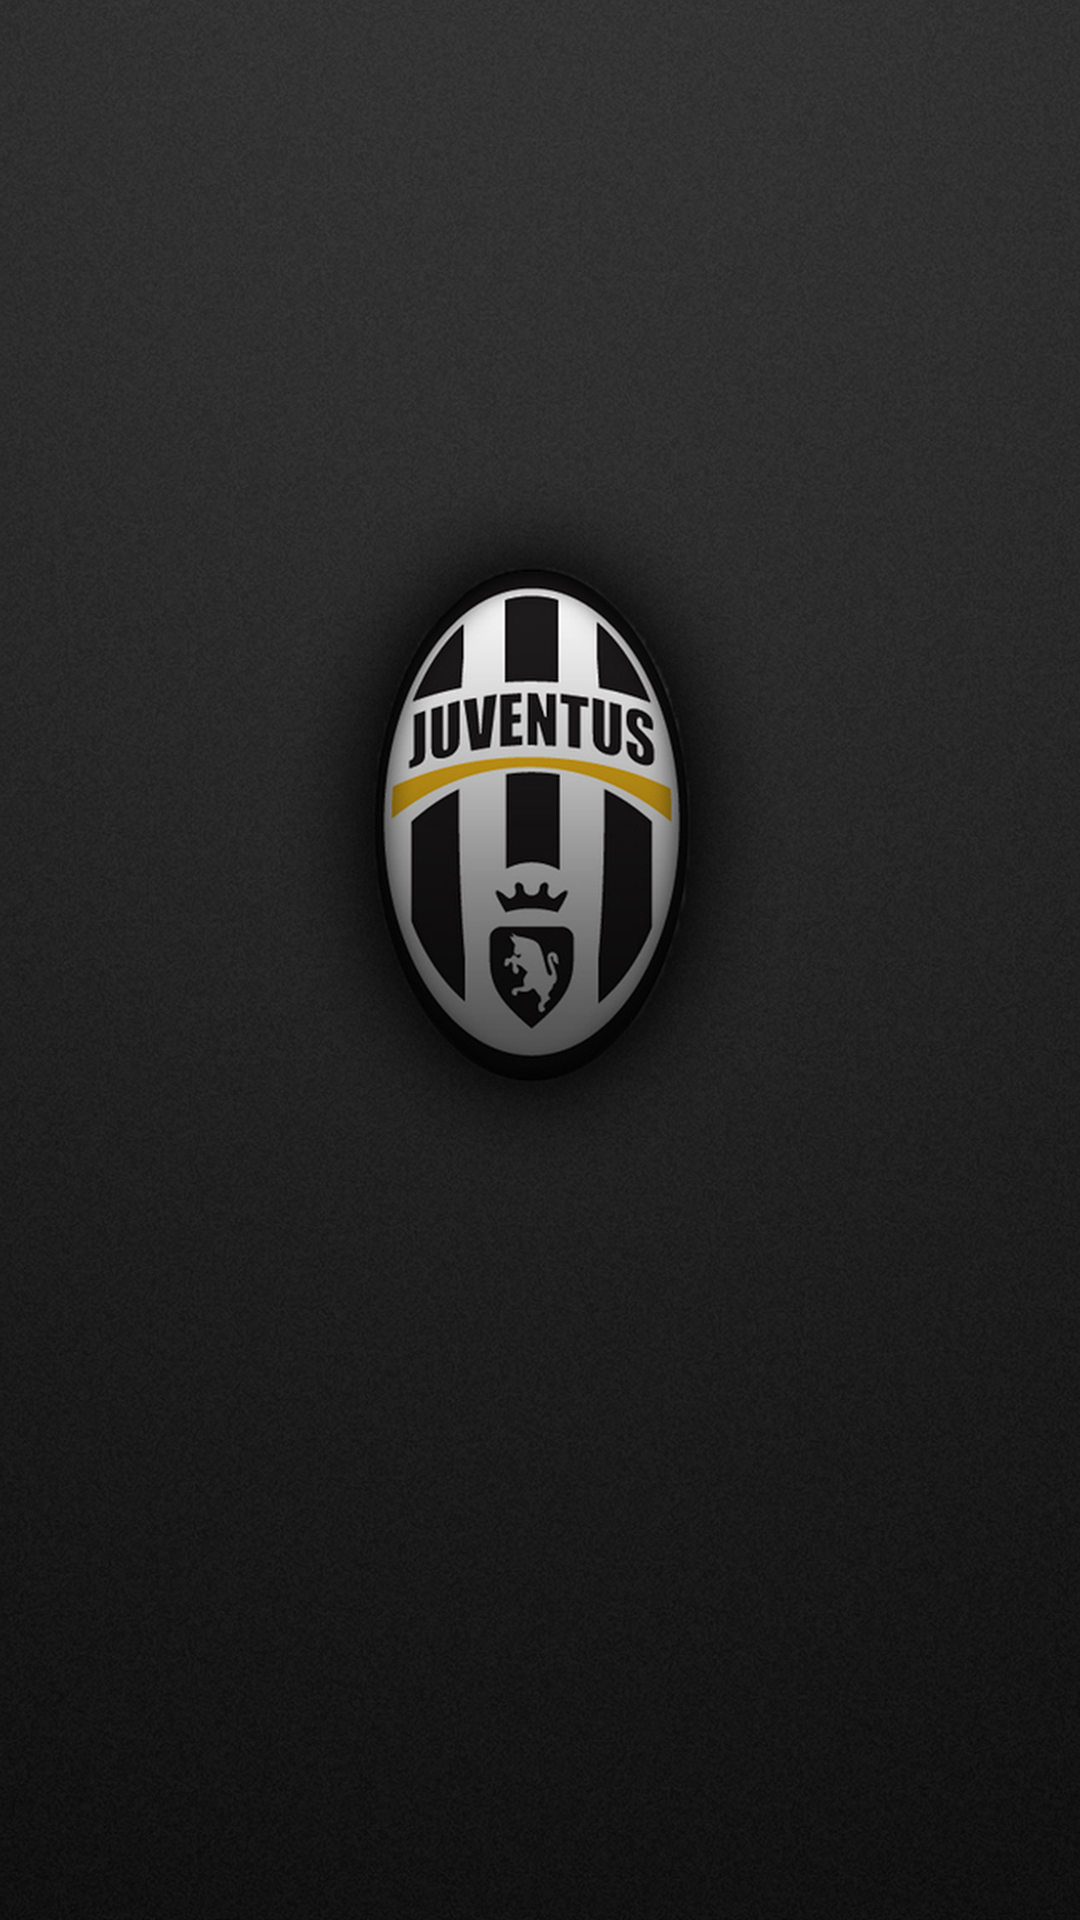 Dimensions Of A Wallpaper For Iphone X Juventus Hd Wallpaper For Your Mobile Phone